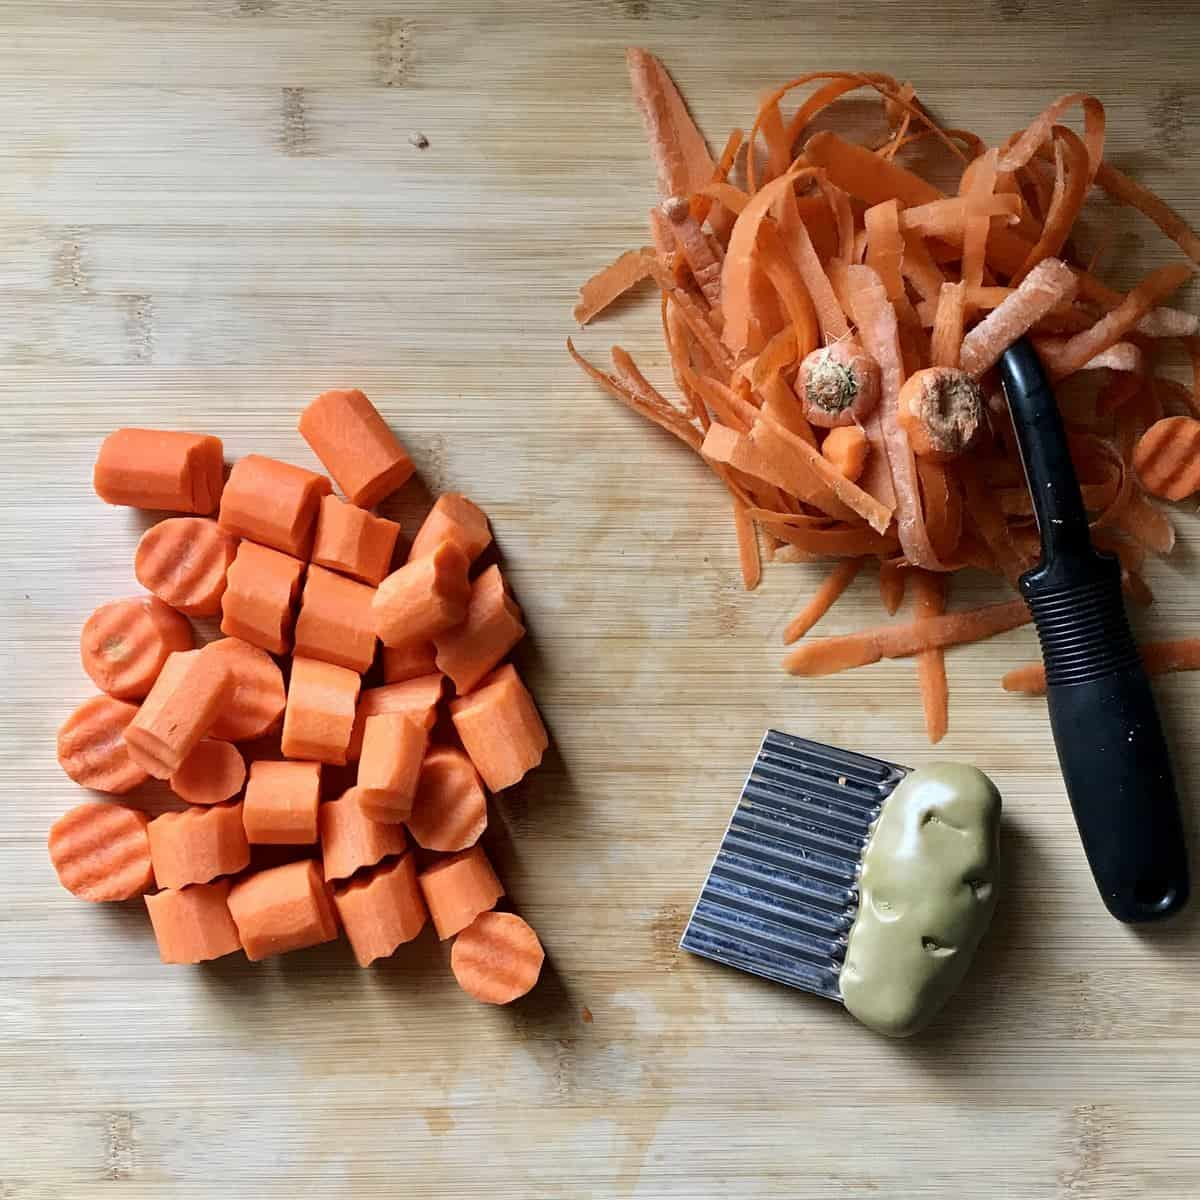 Crinkle cut carrots on a wooden board.